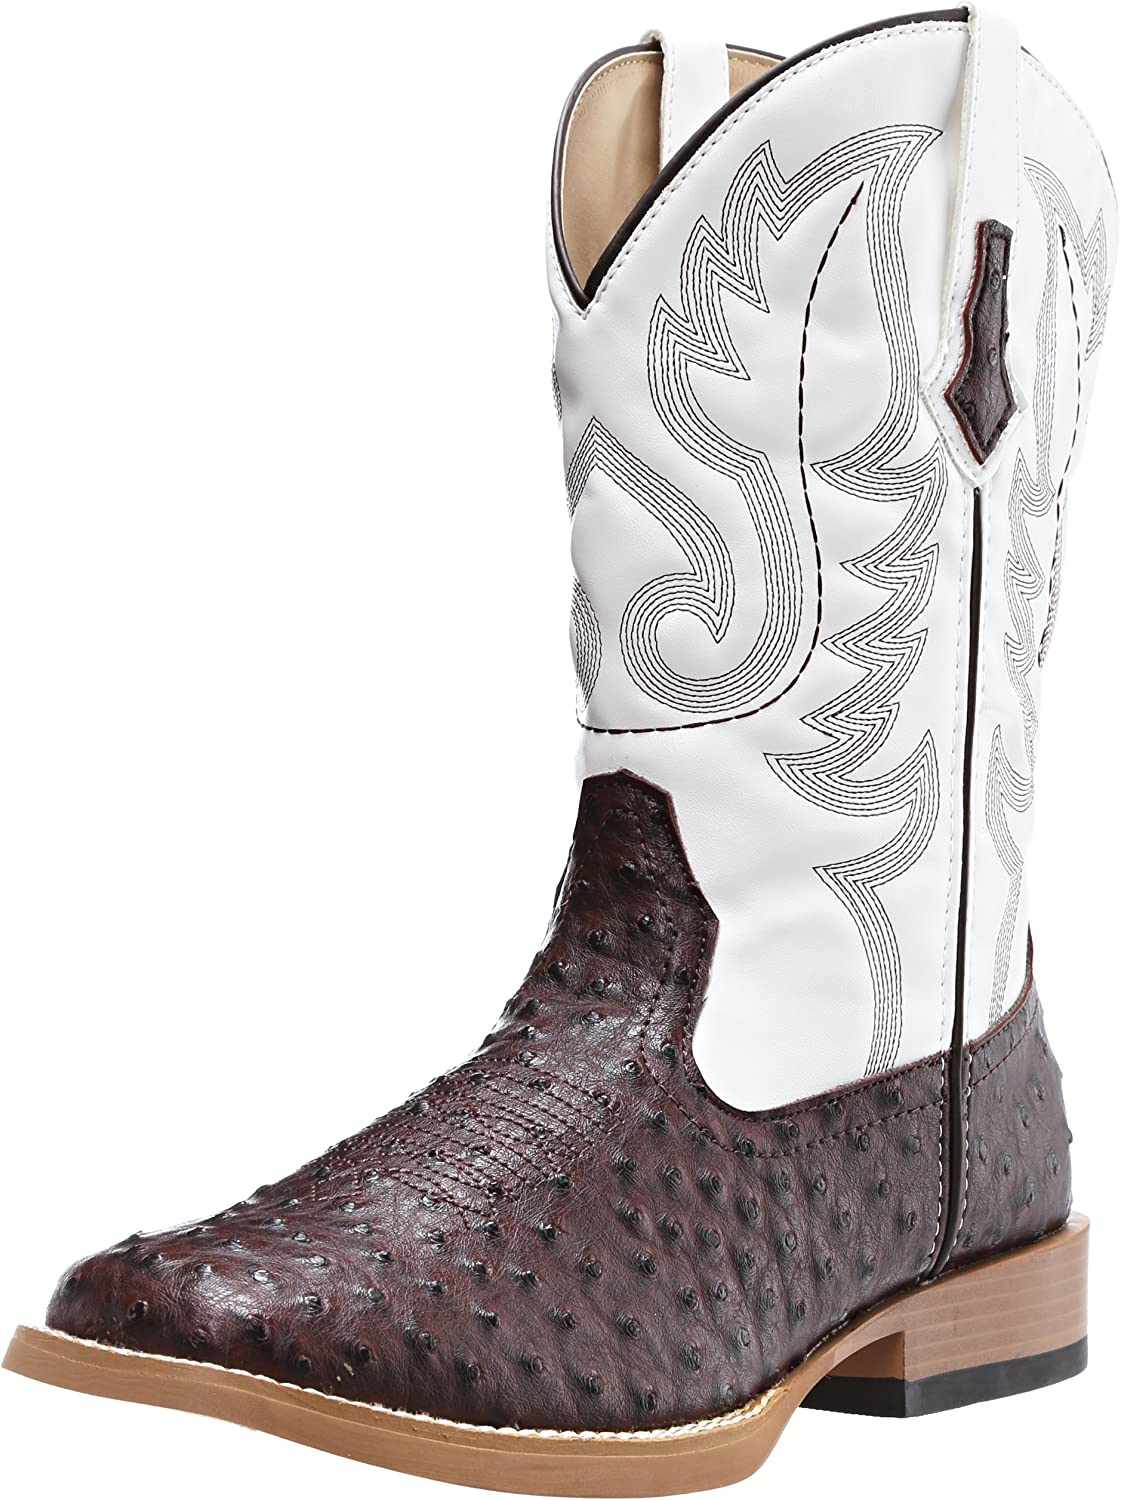 ROPER Western Boots Mens 67% OFF of fixed price Max 56% OFF Faux Brown 09-020-1900-00 Ostrich White